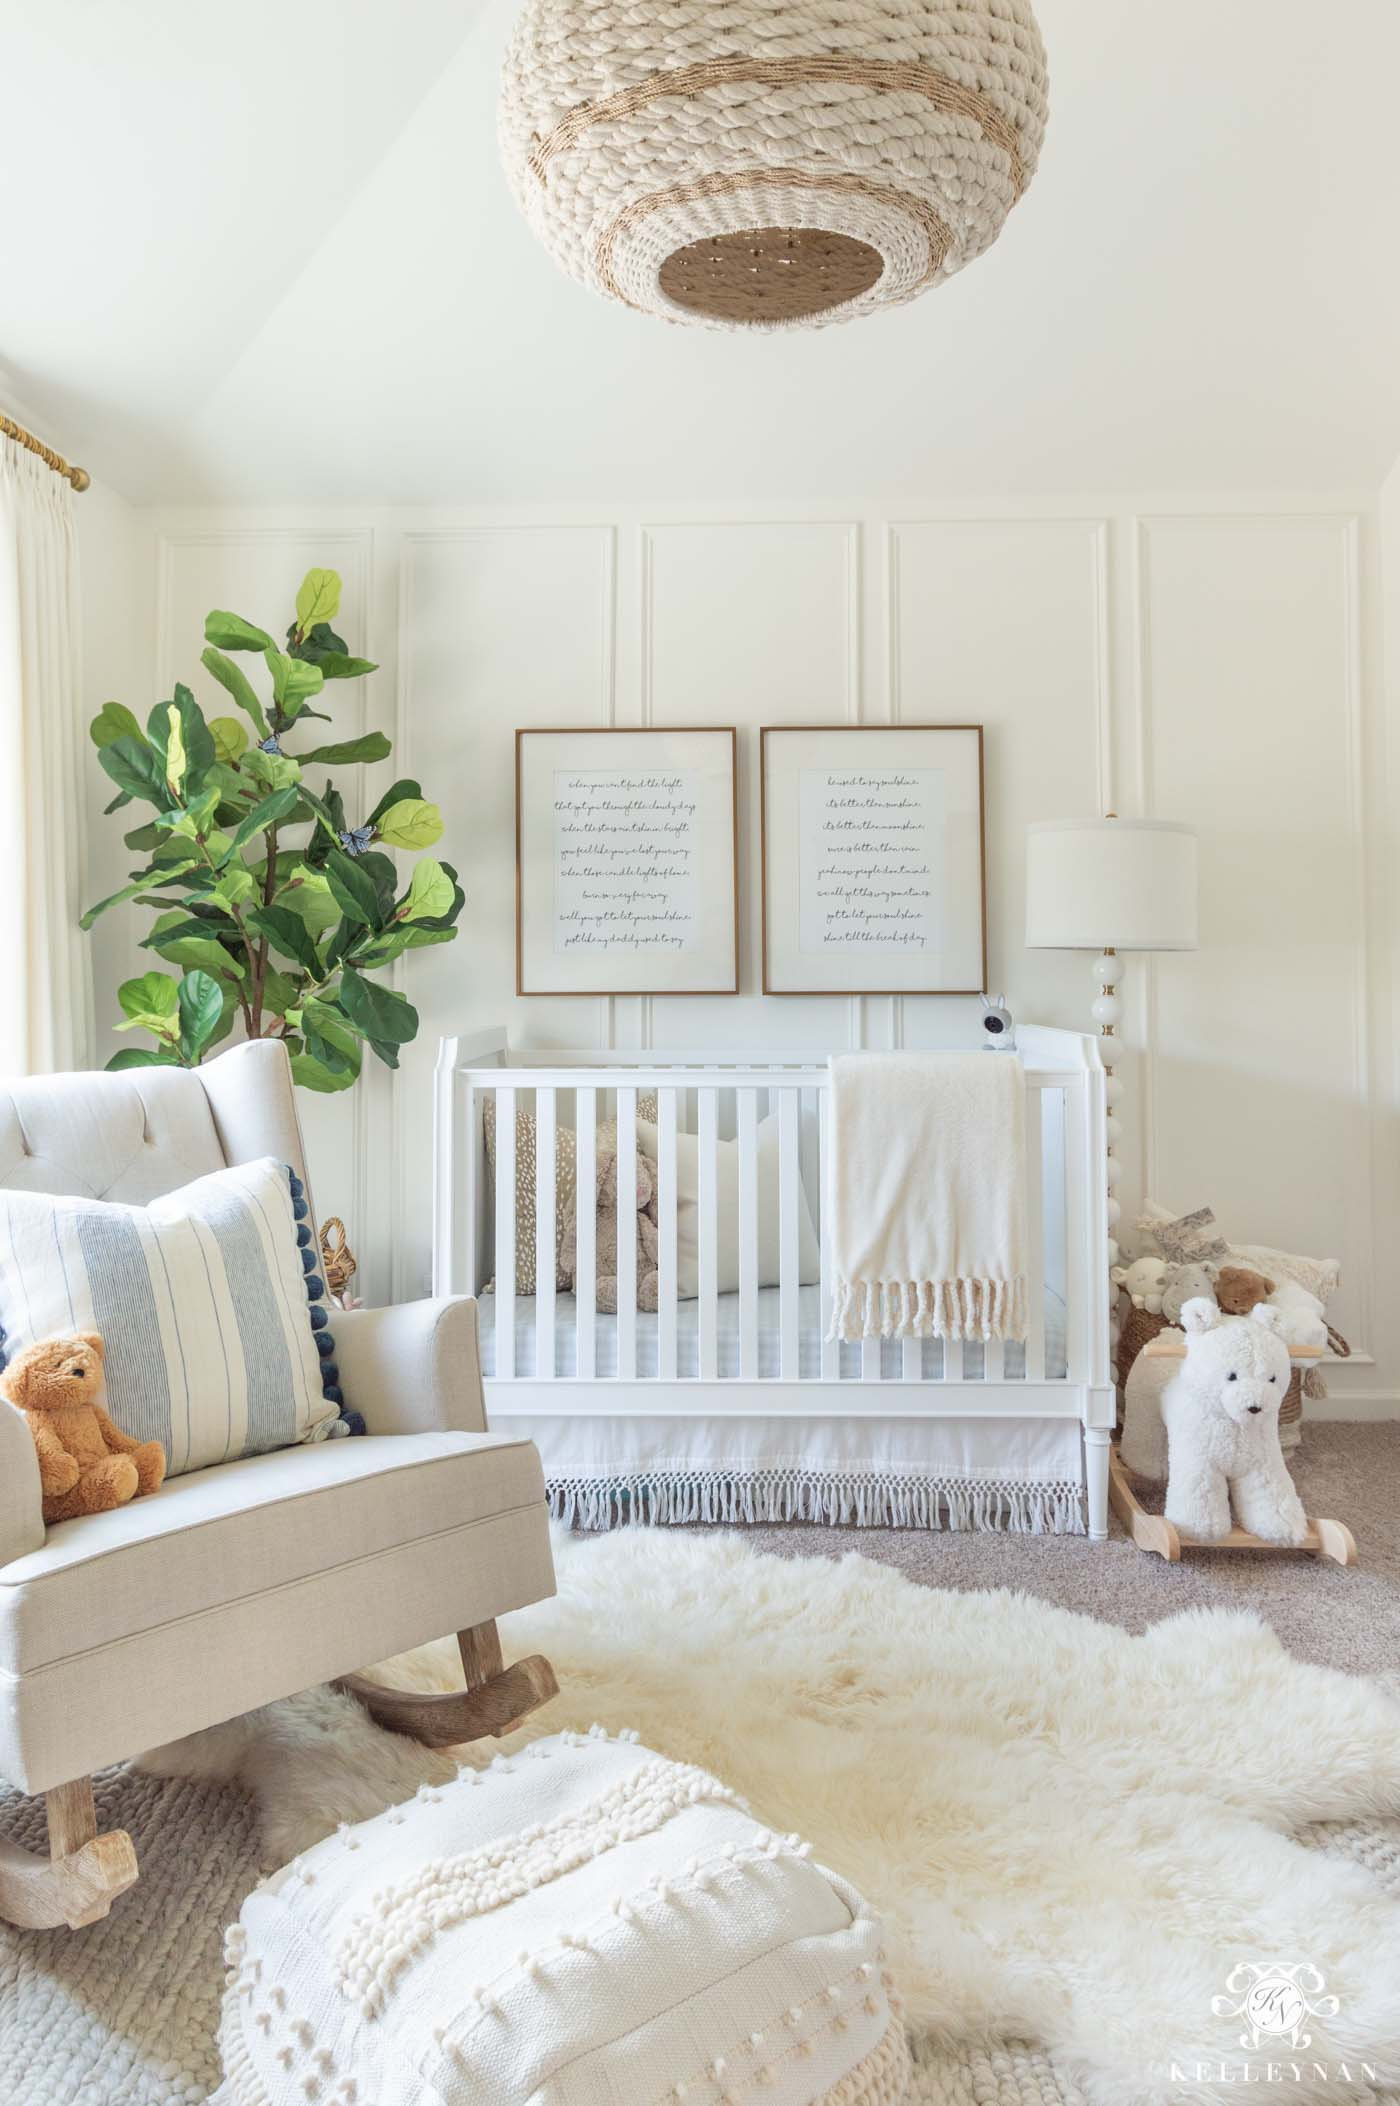 White and Neutral Baby GIrl Nursery Design (with pops of blue!)